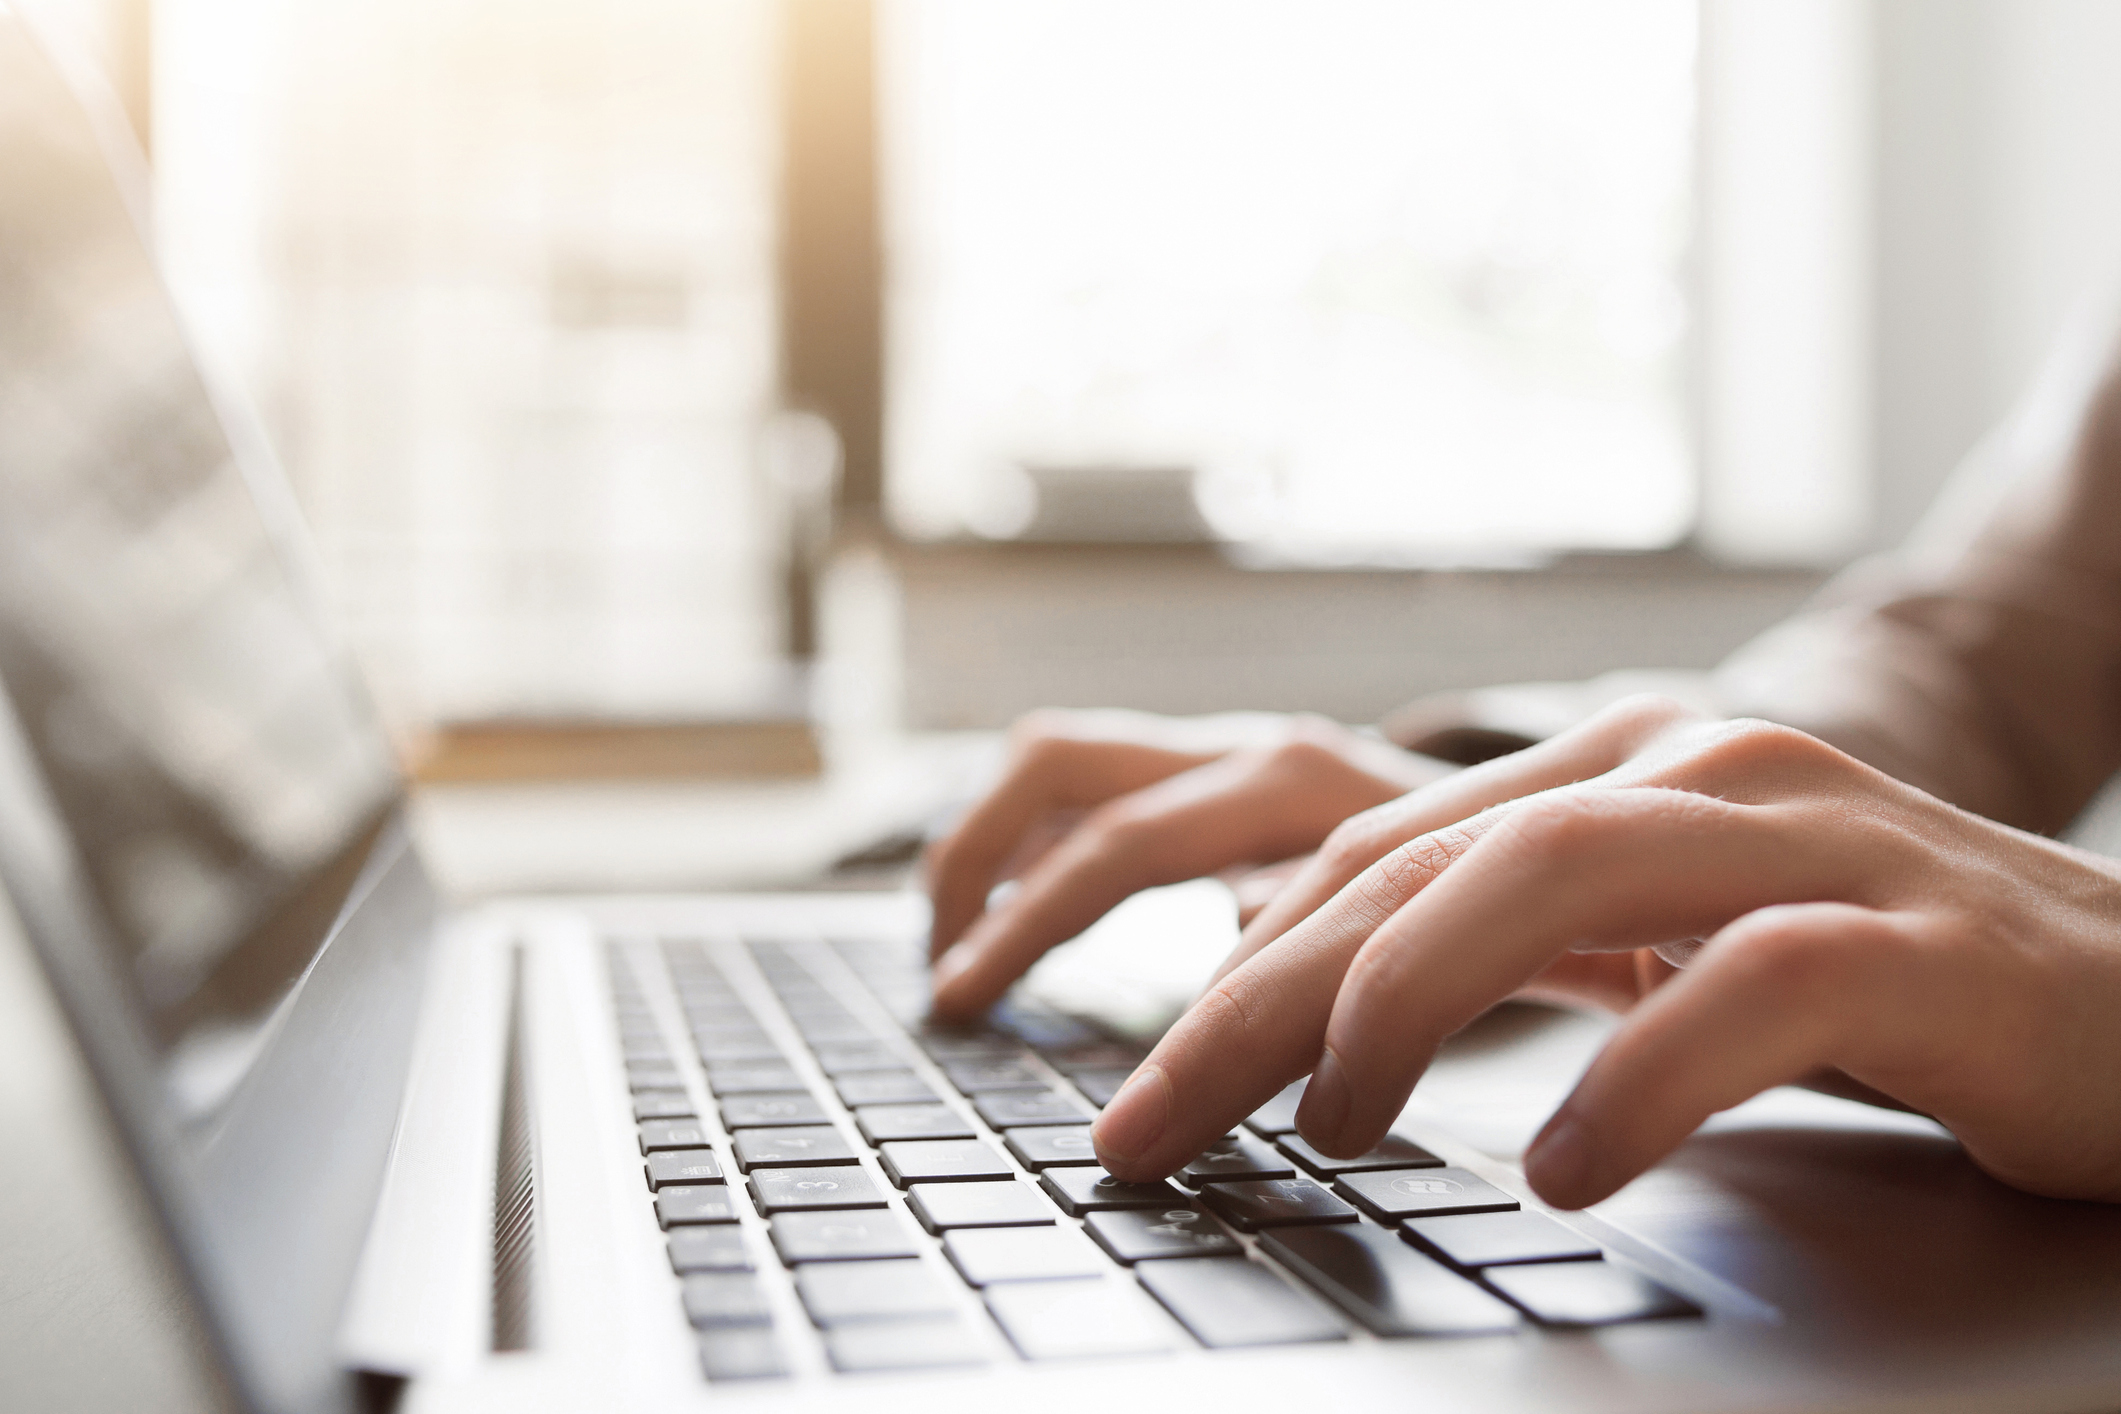 Find helpful external links to assist you with managing your student loan account.